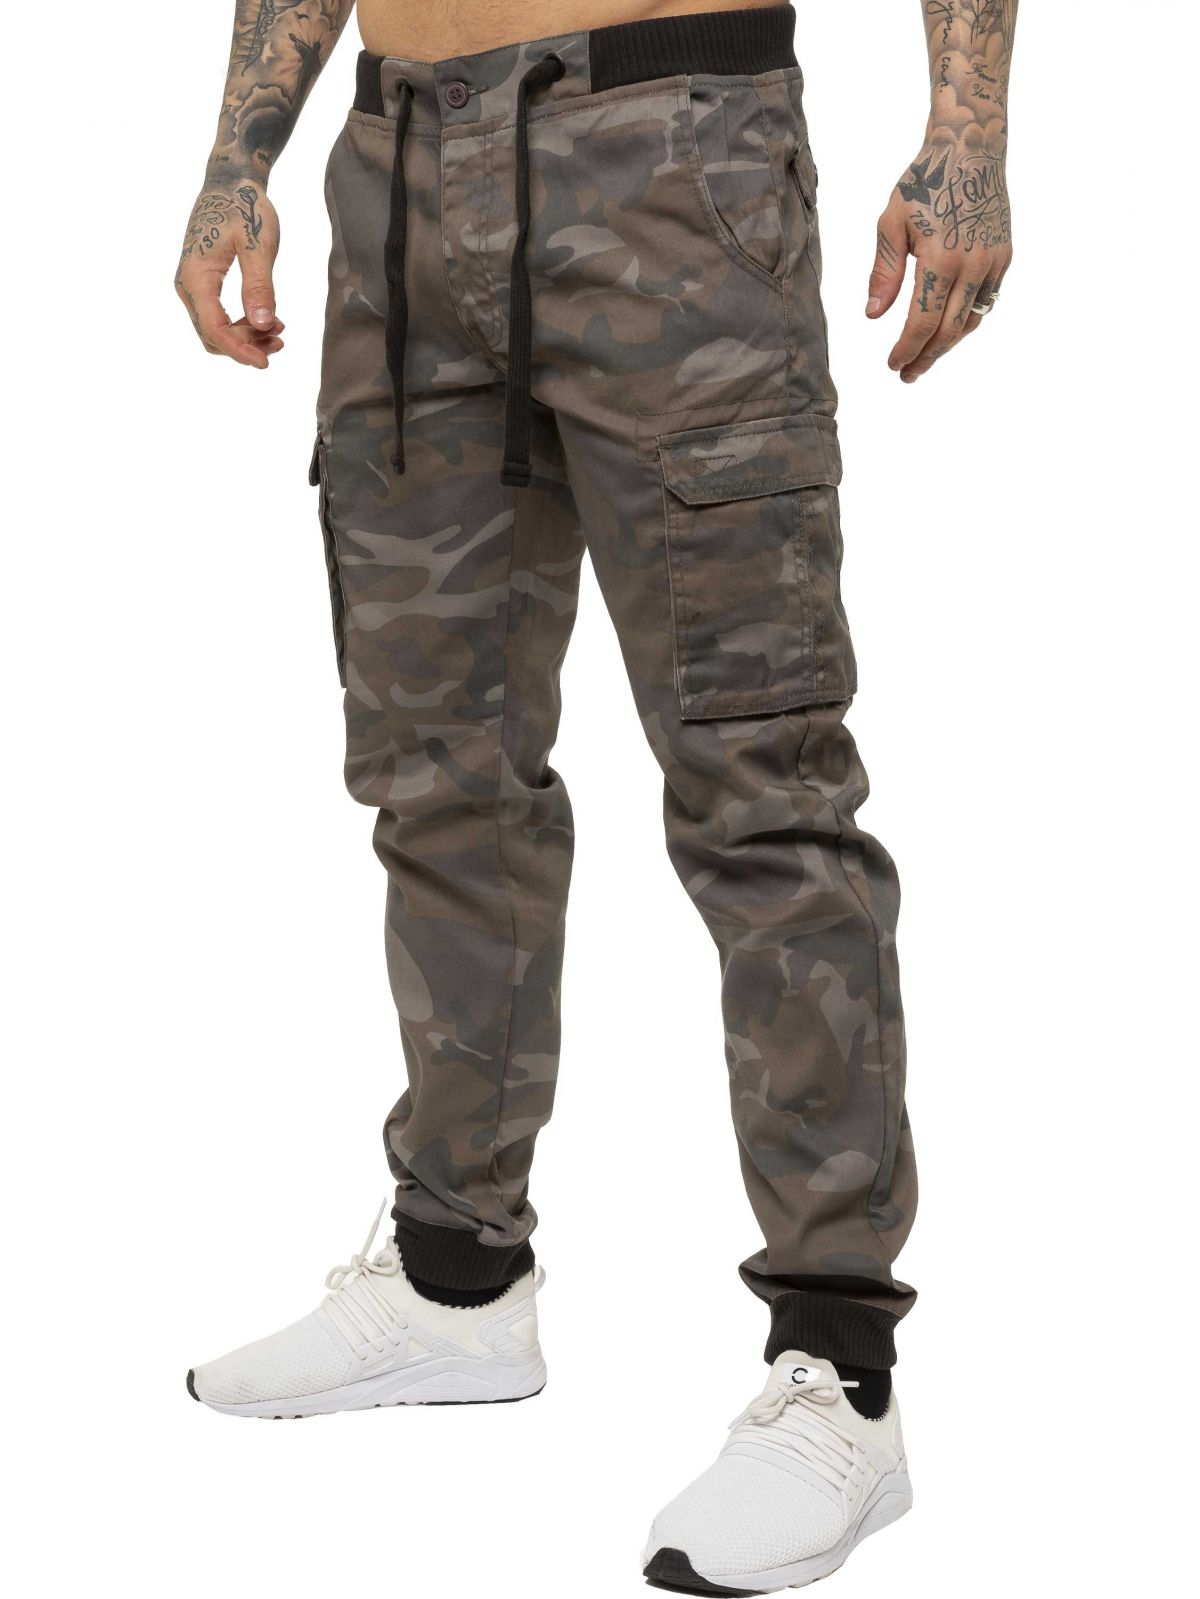 ENZO Mens Military Combat Cuffed Camouflage Jeans